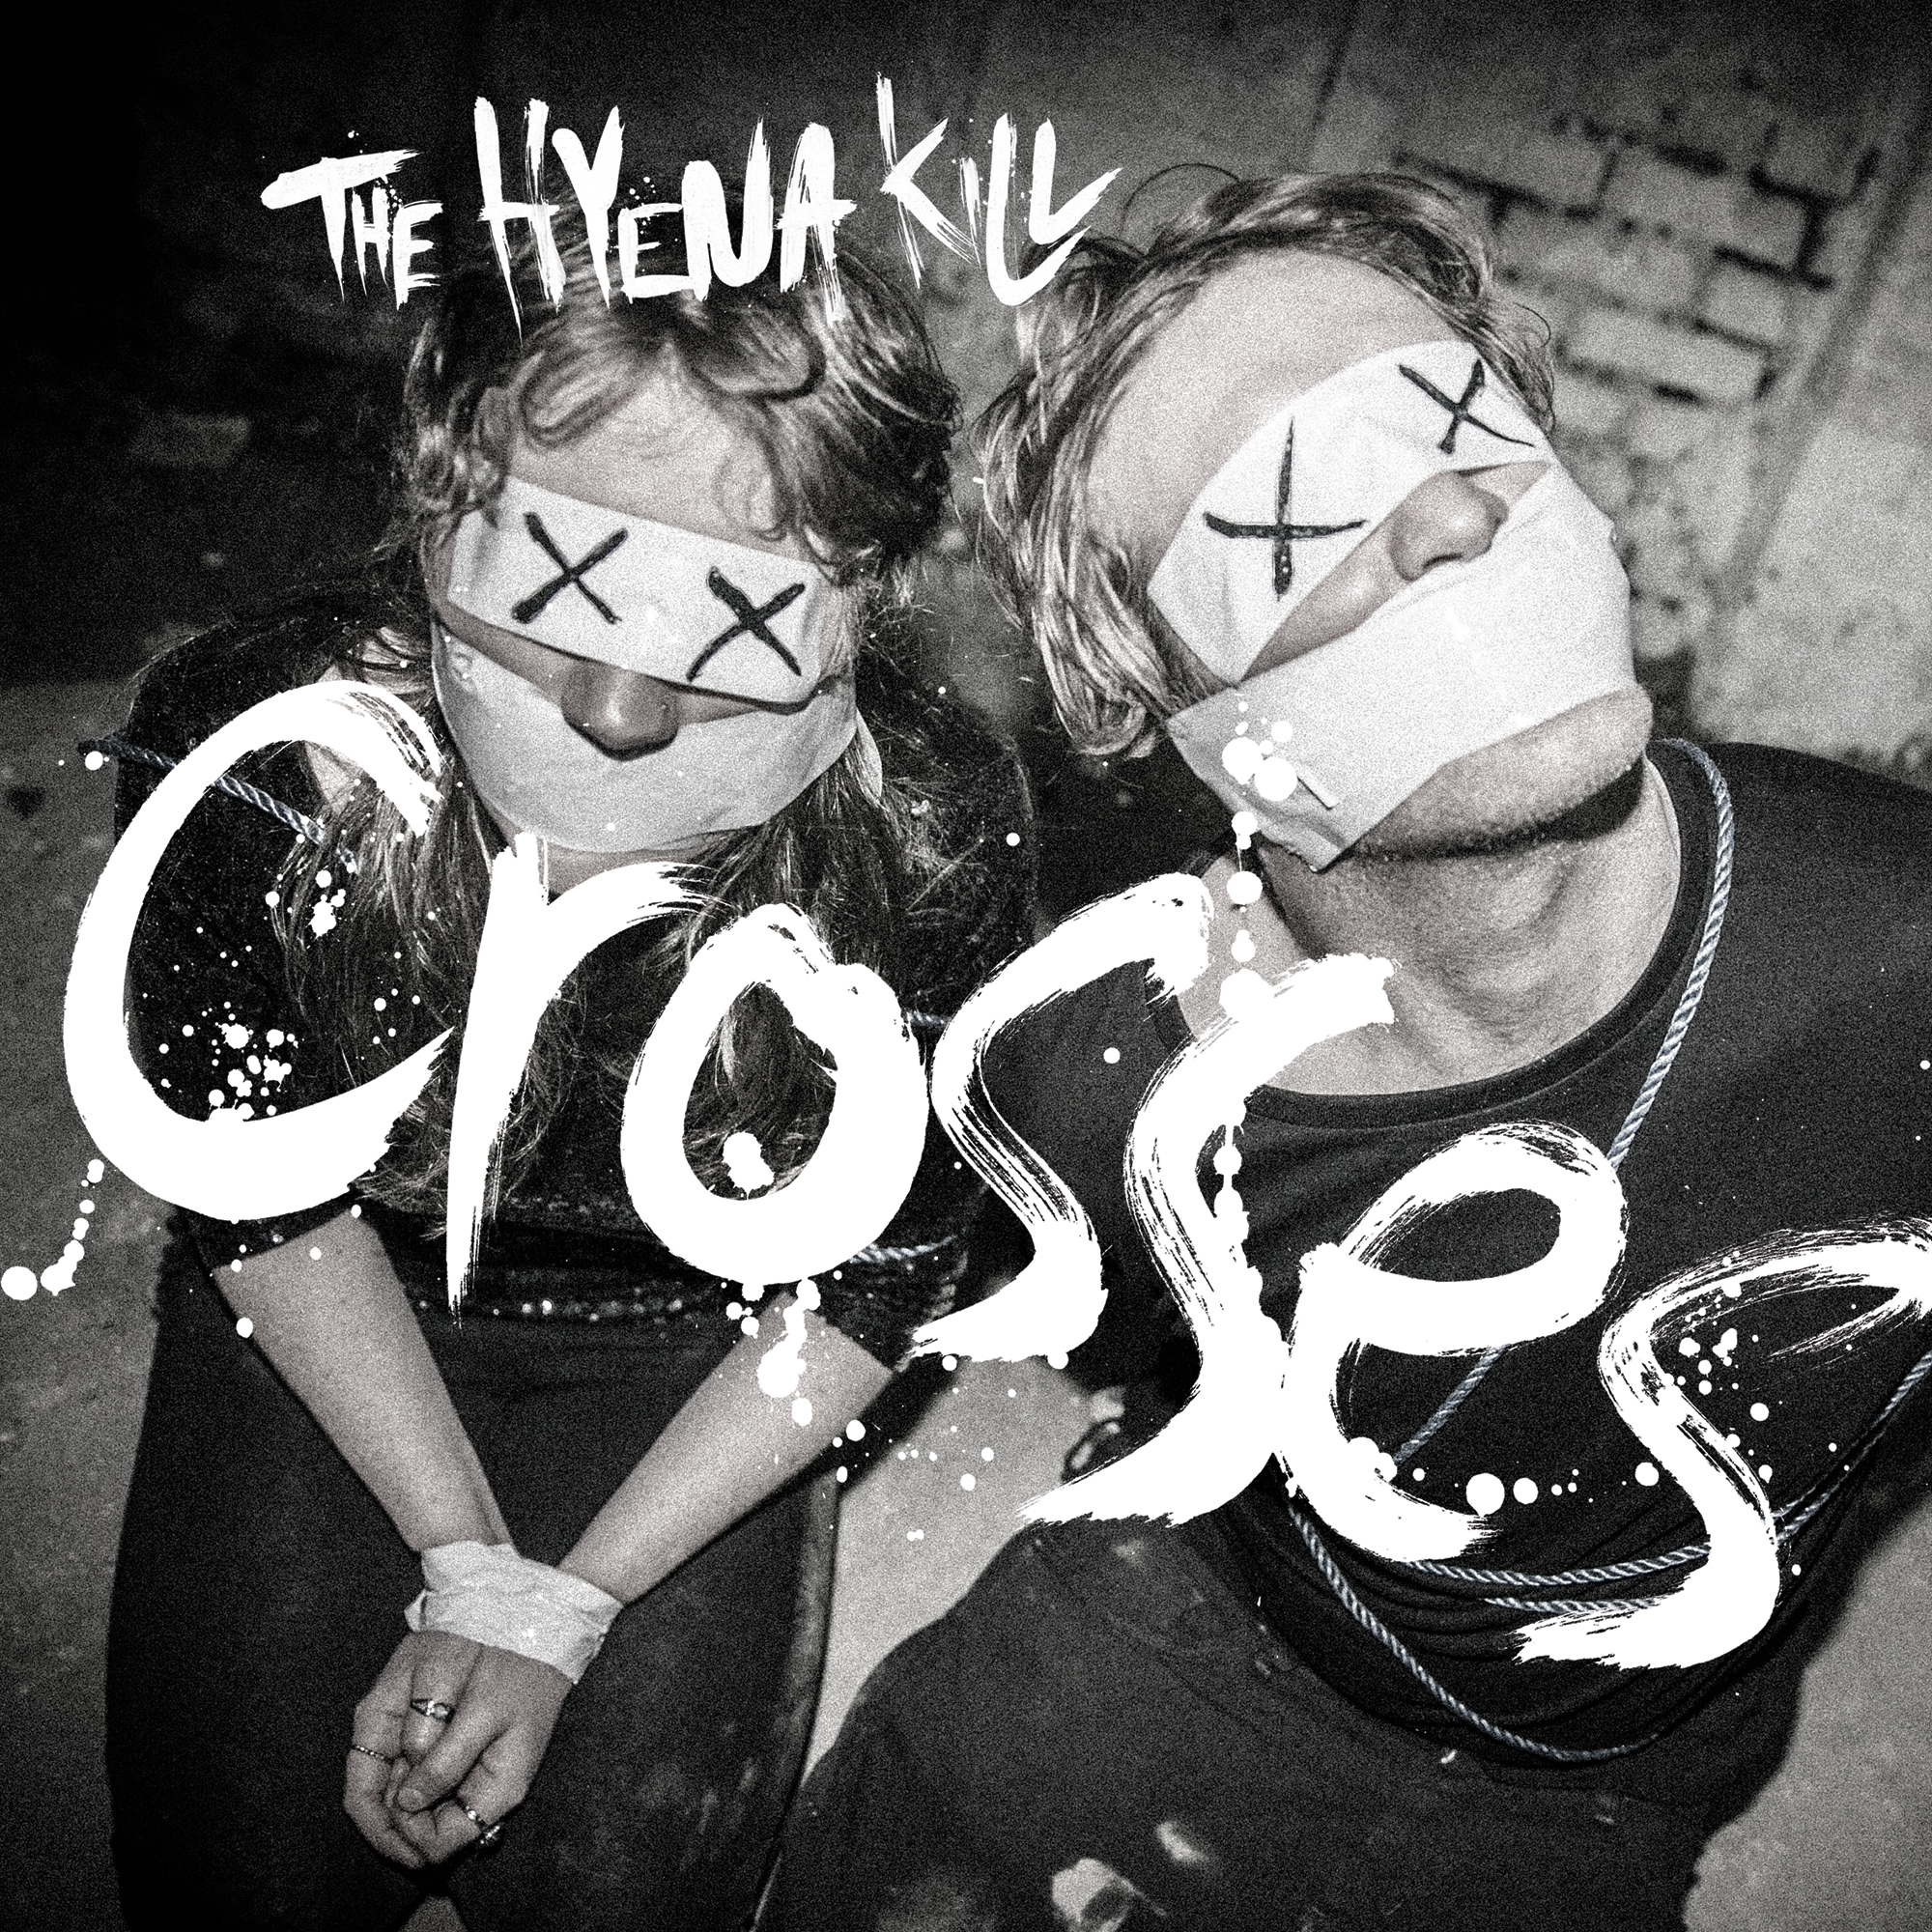 crosses single sleeve artwork